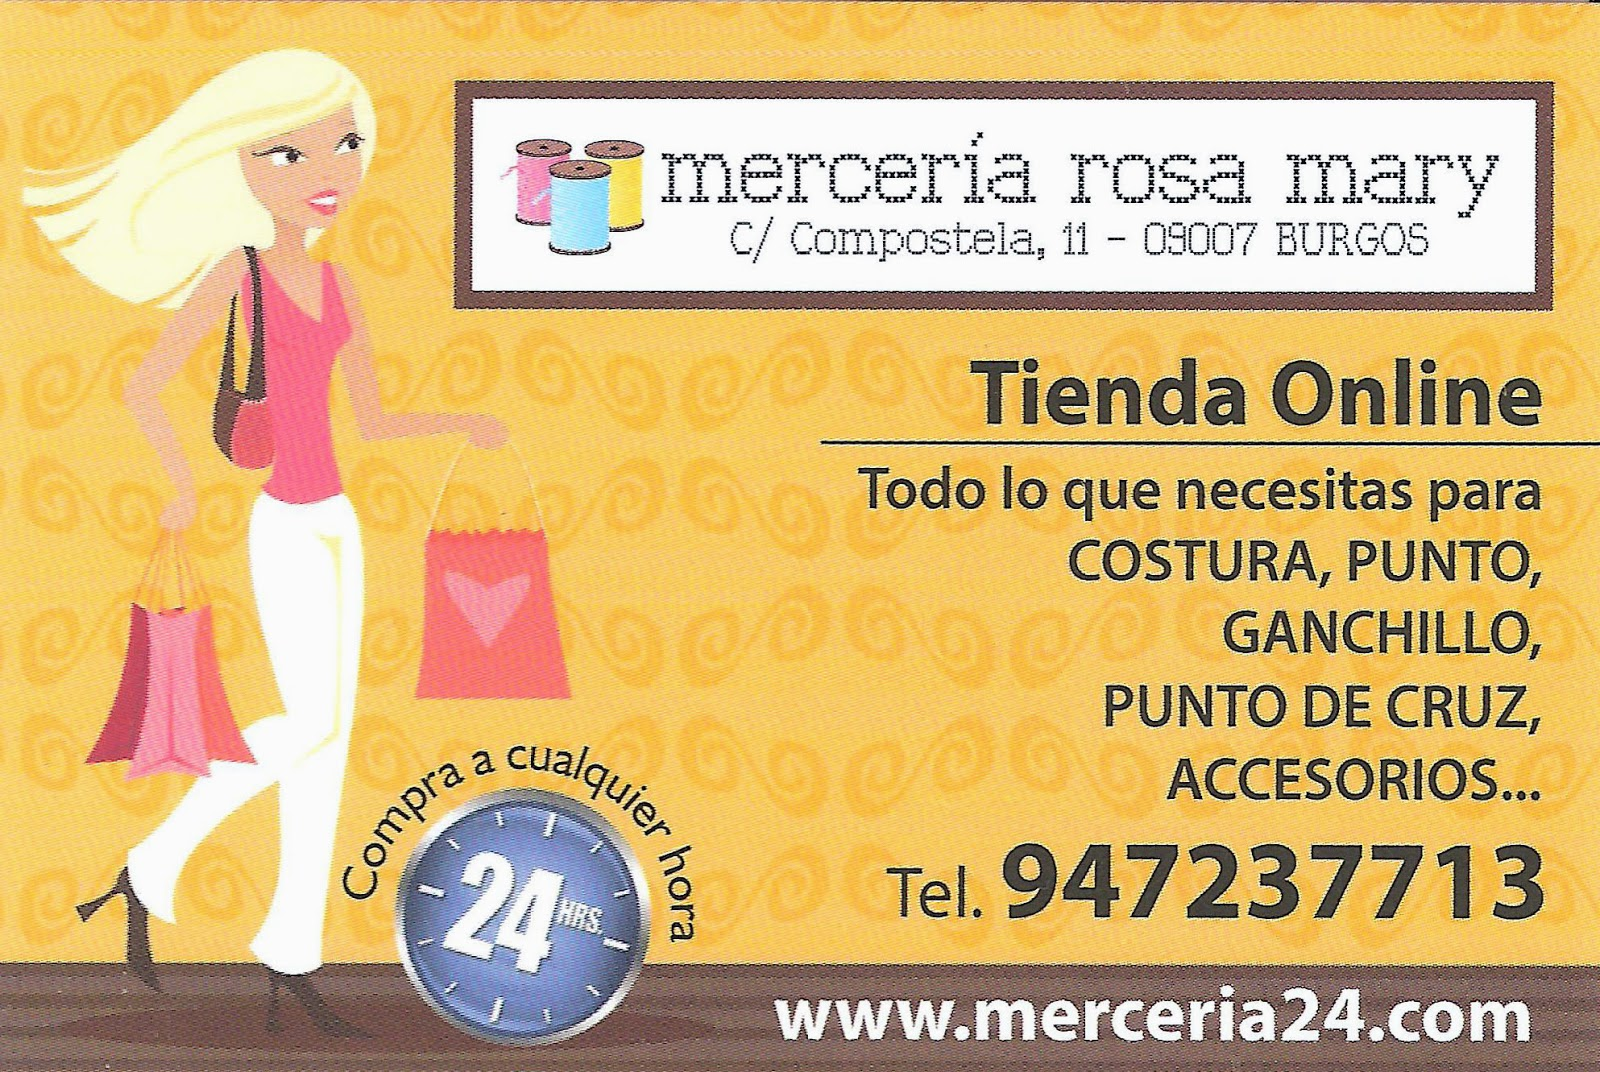 https://www.facebook.com/merceria.rosamary?fref=ts